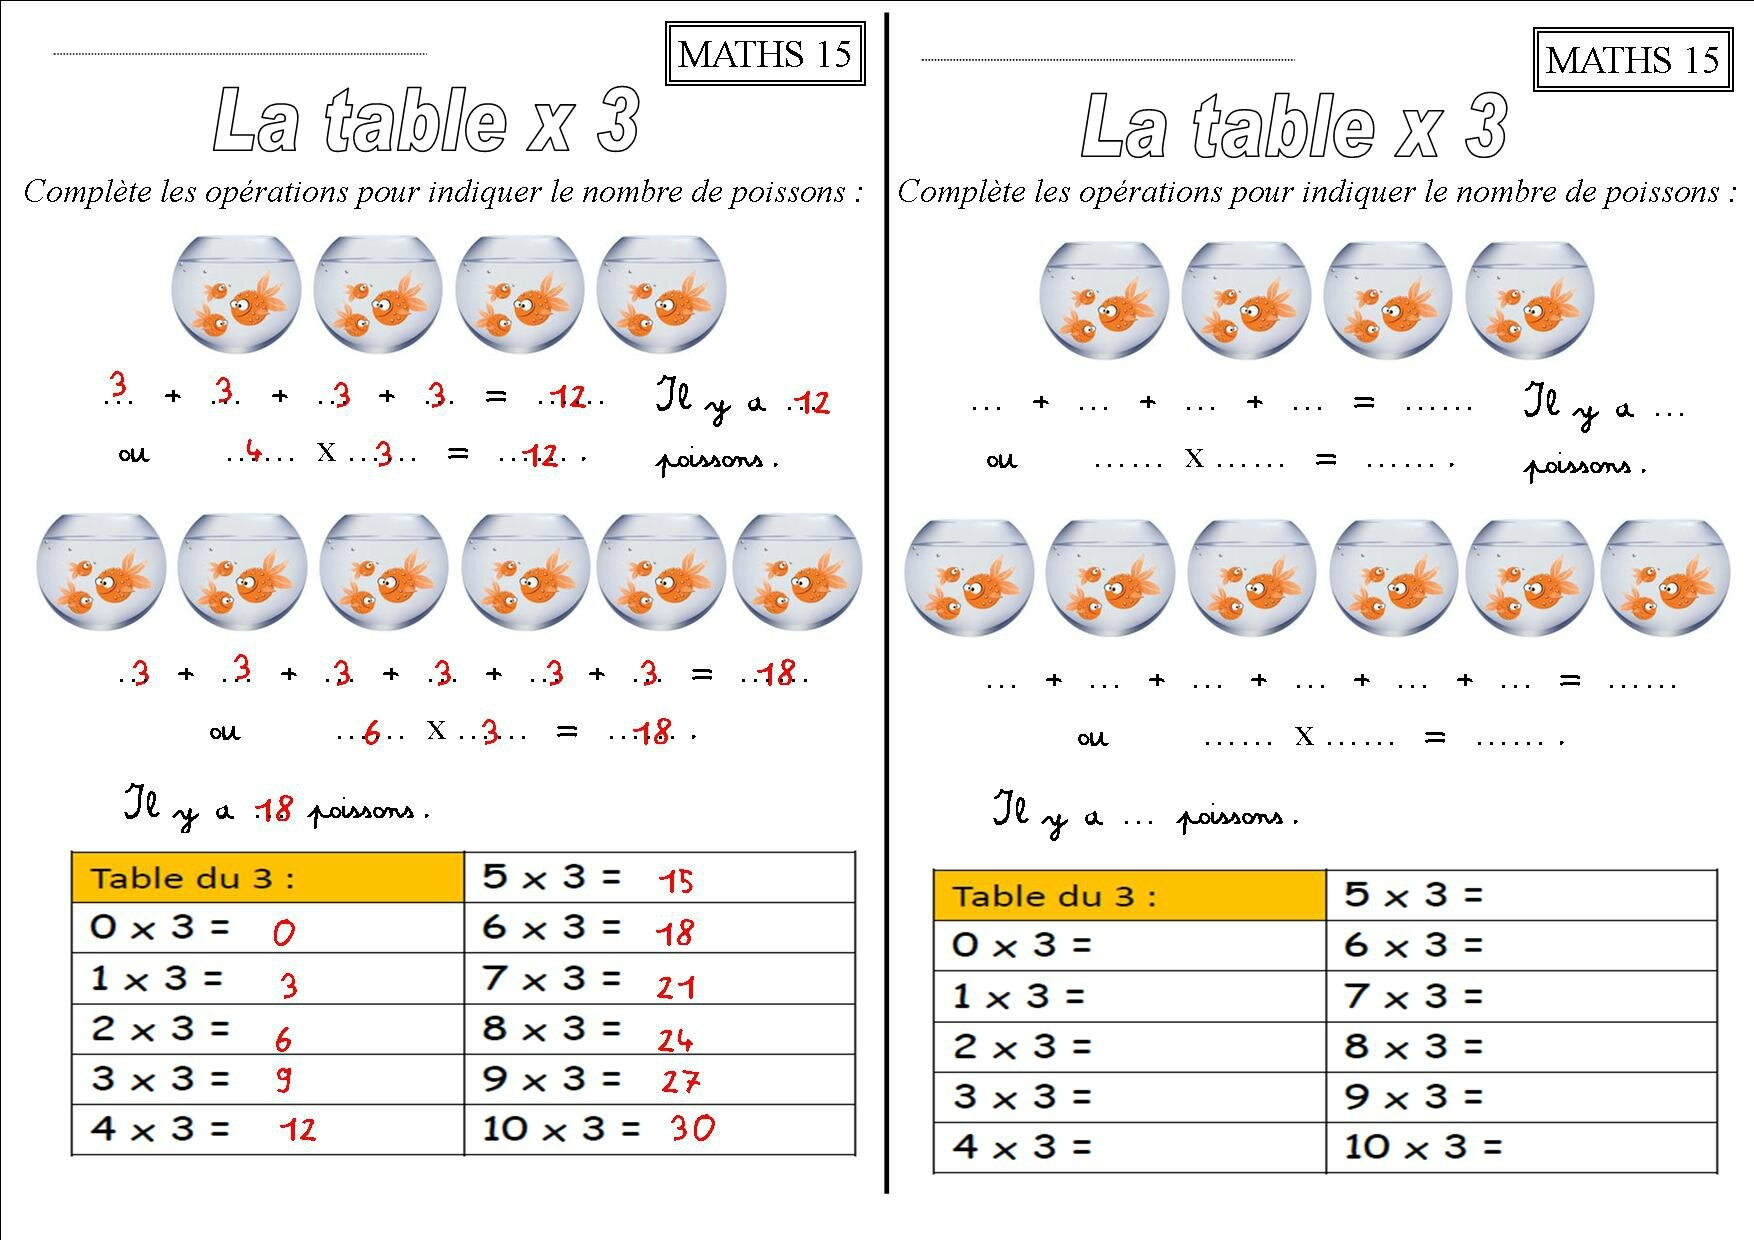 Exercice de table de multiplication 2 3 4 5 6 images des for Table de multiplication exercice